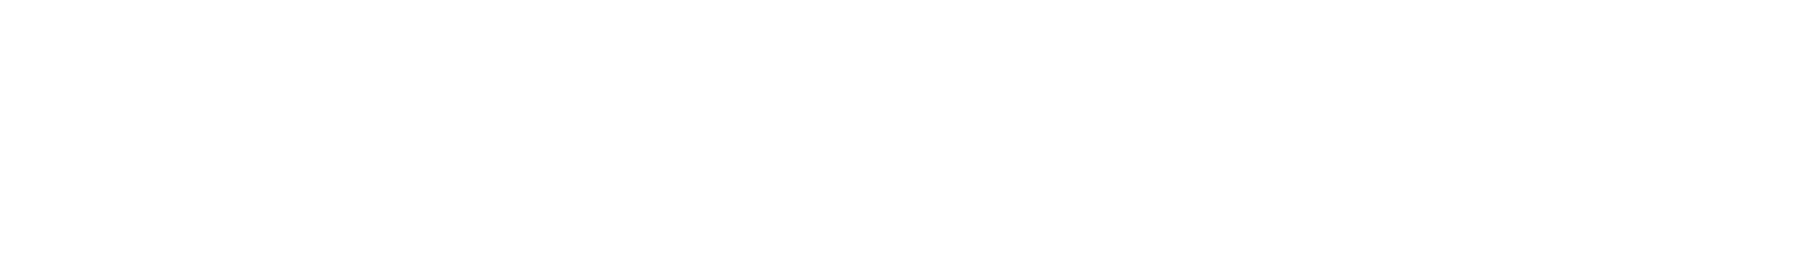 veh1 cutted sounds   189